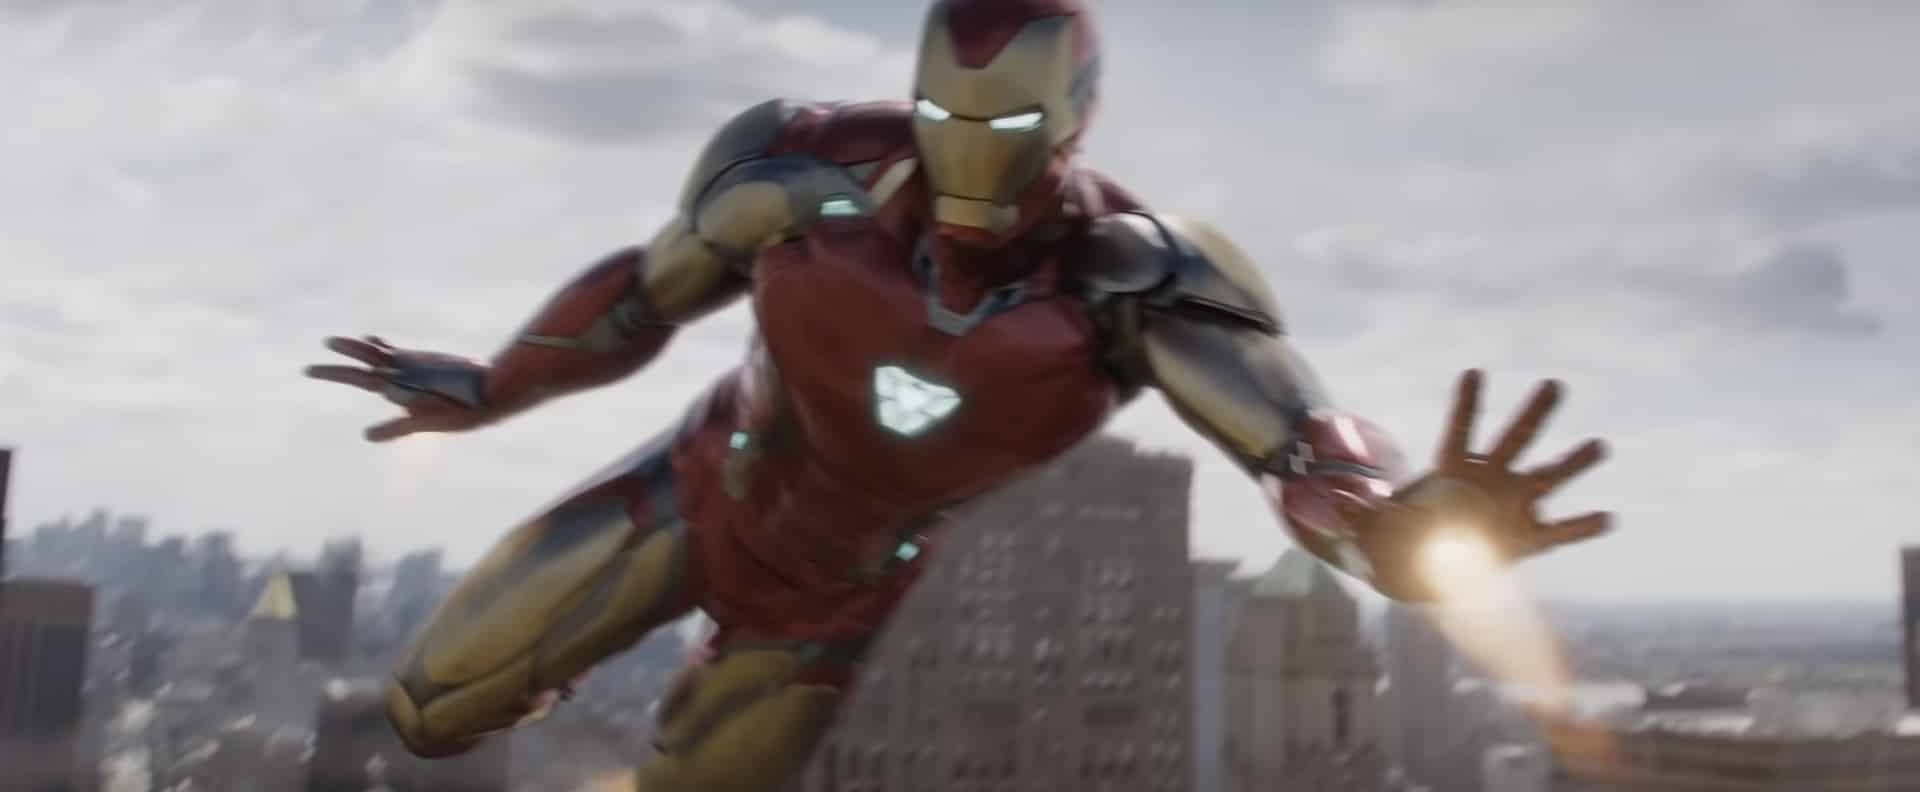 iron man en Marvel Vengadores: endgame